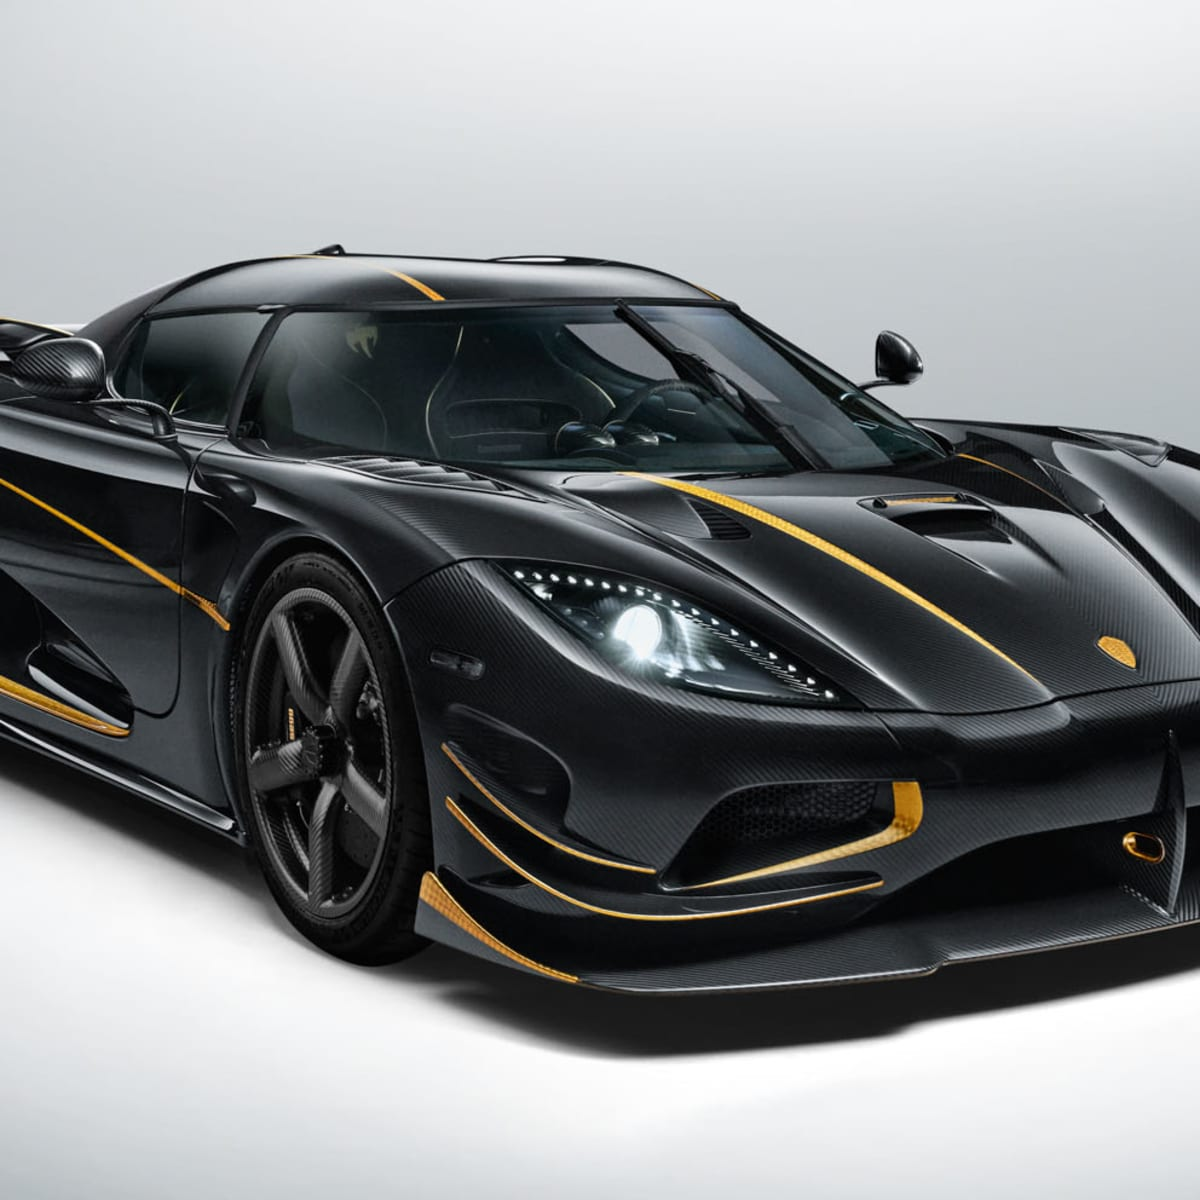 Koenigsegg Agera Rs Gryphon One Off Hypercar With 24 Carat Gold Trim Revealed Caradvice